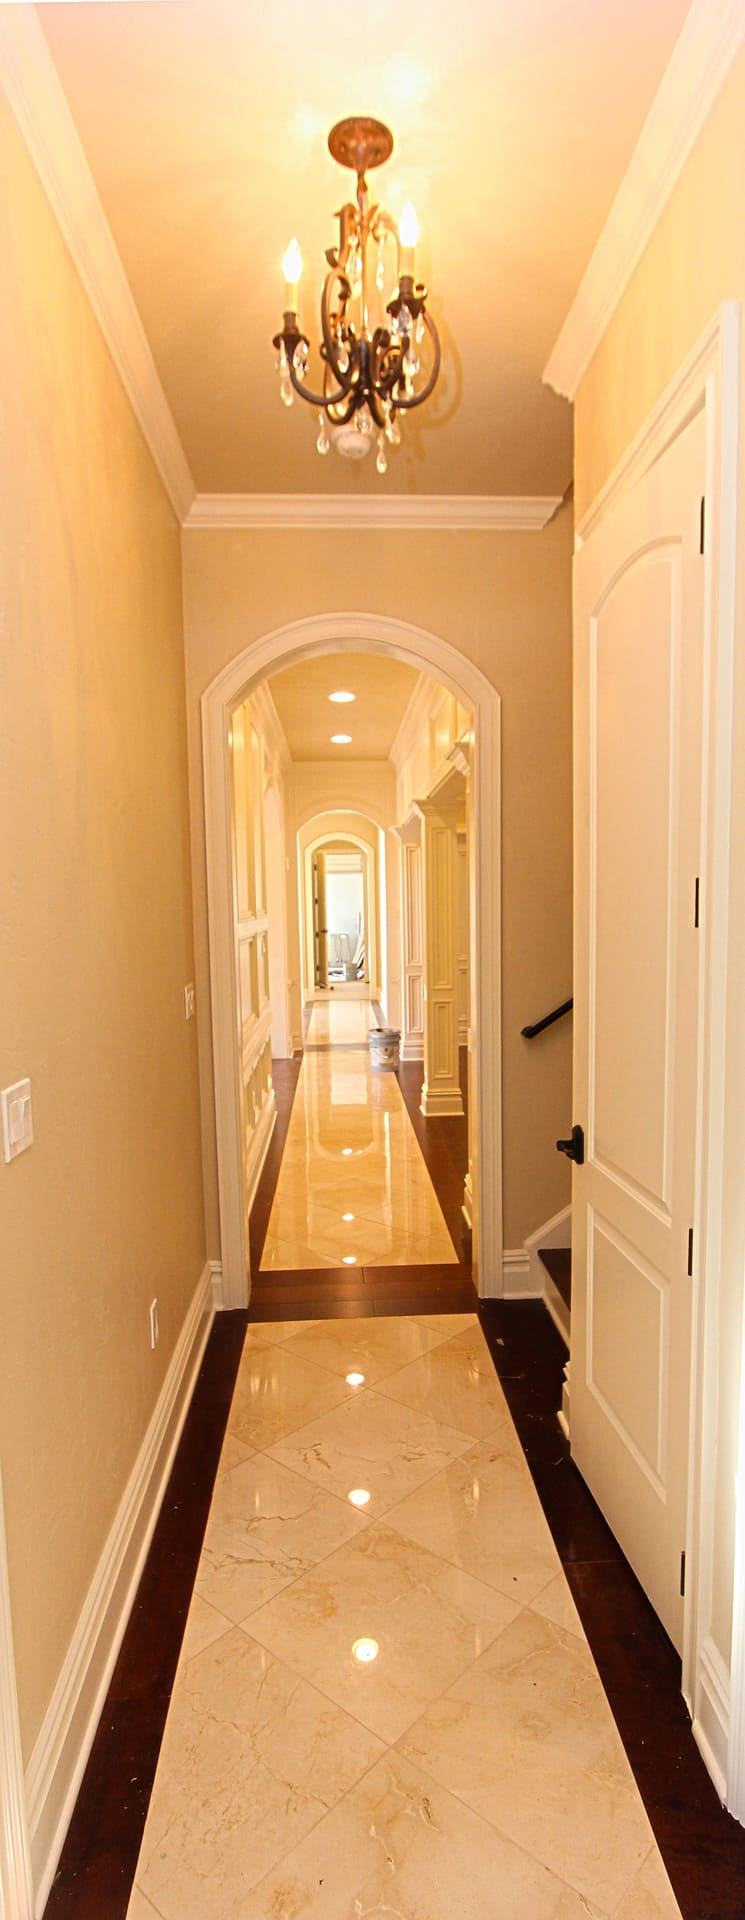 Country Club Estate Tiled Hallway with Chandelier